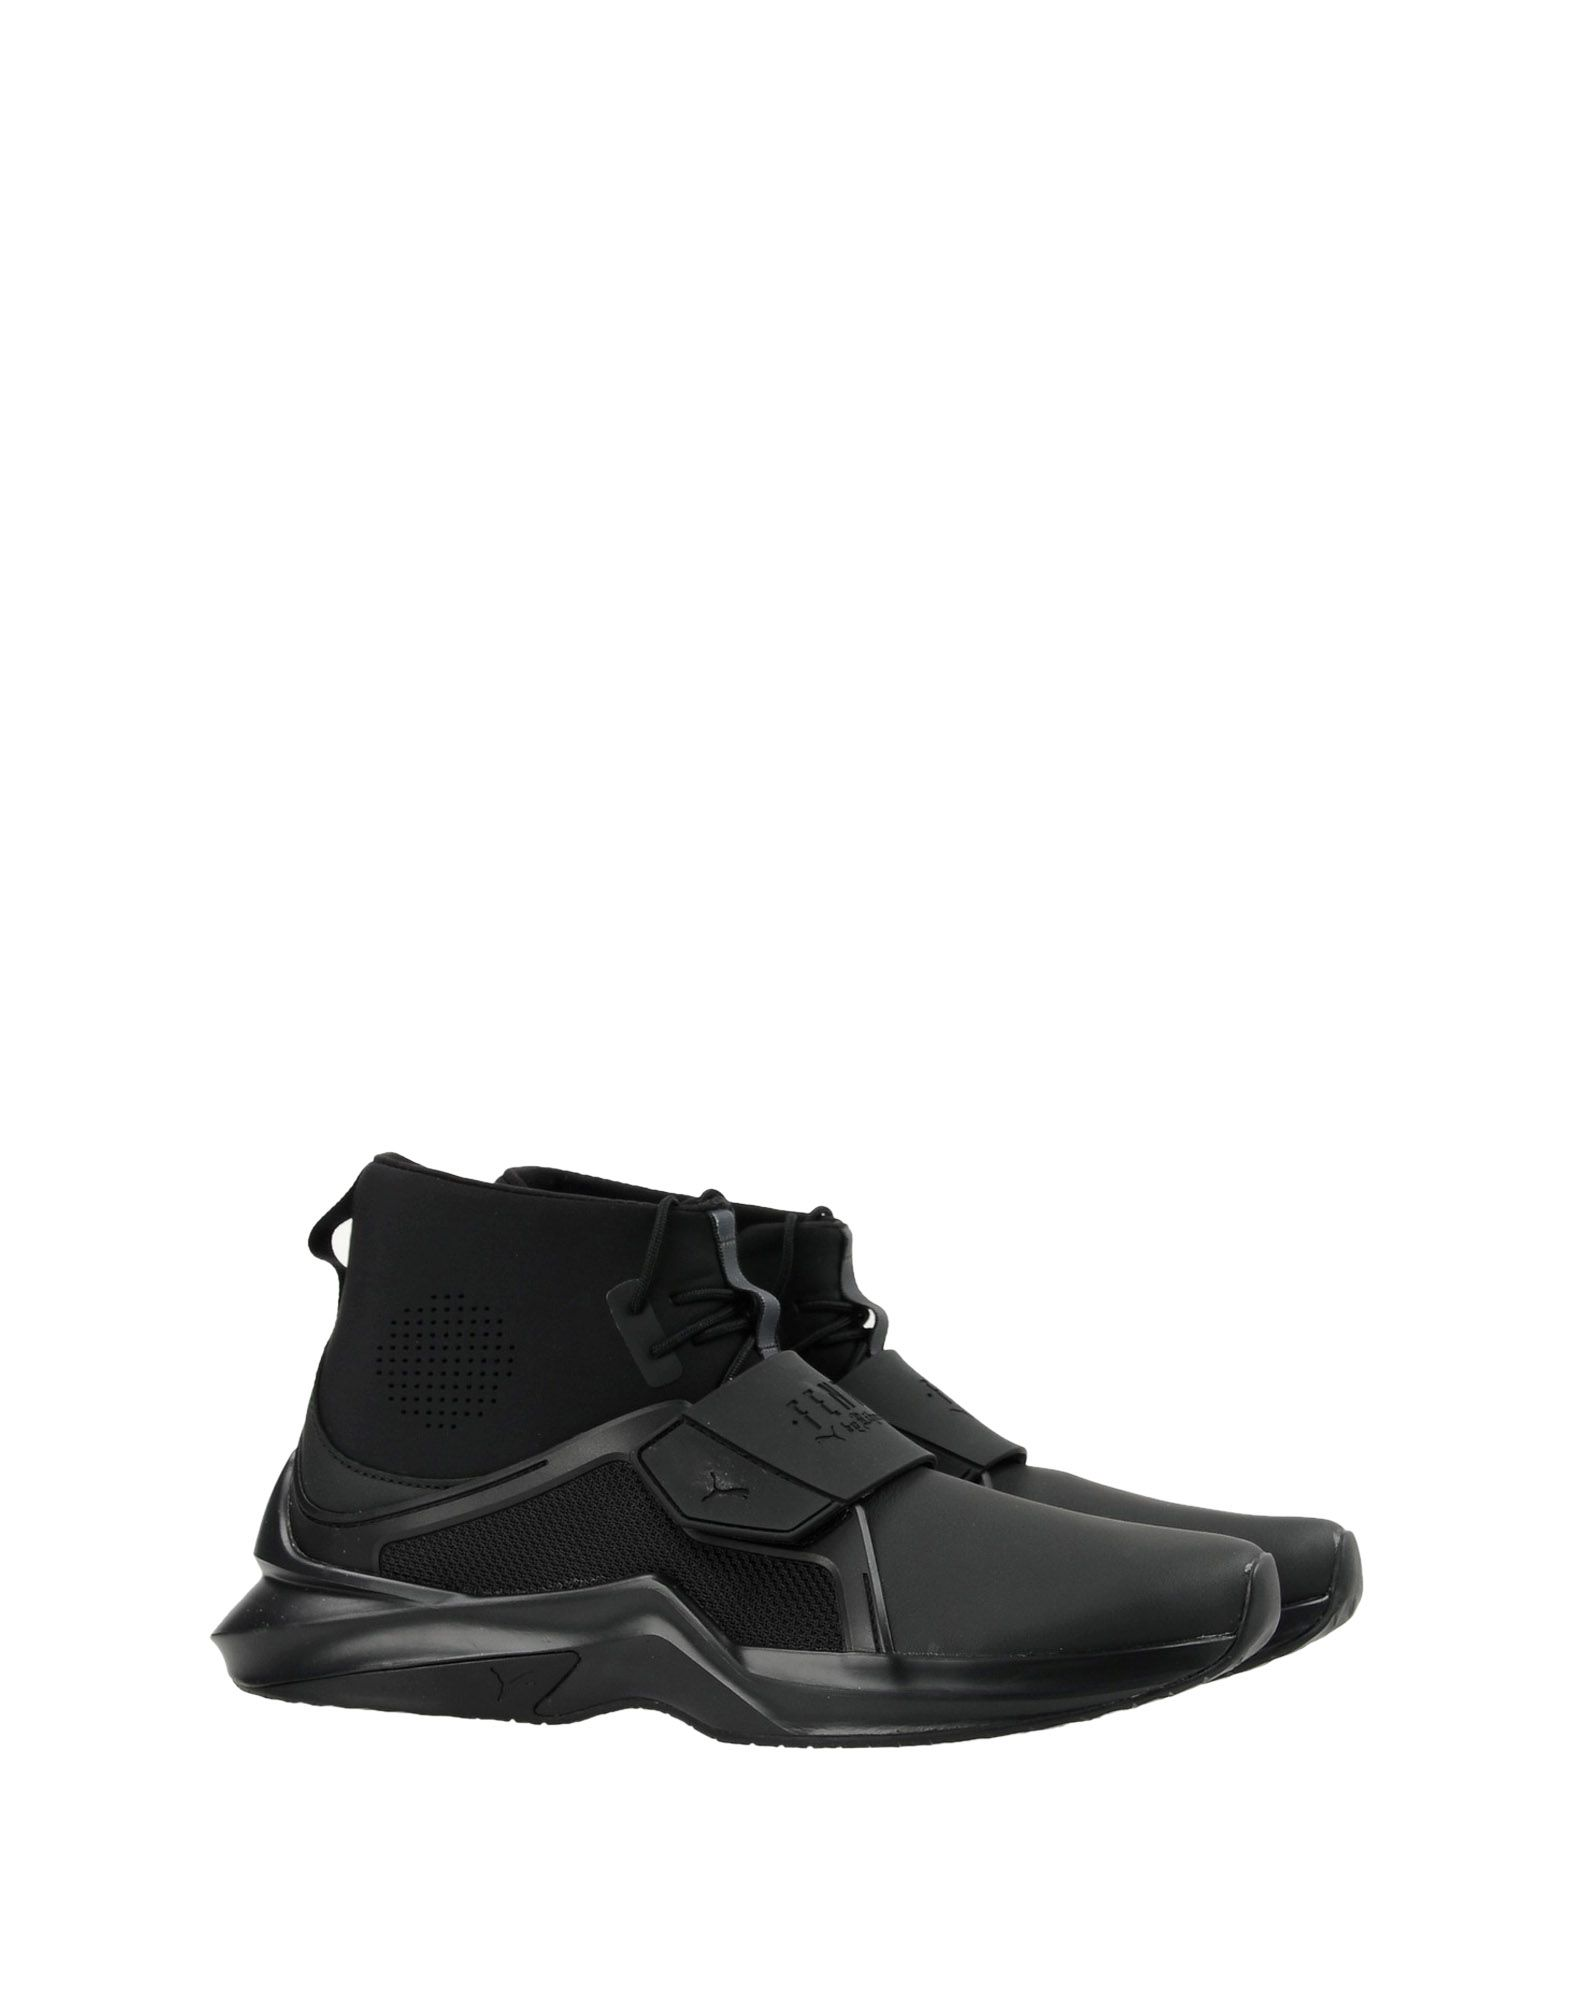 Sneakers Fenty Puma By Rihanna The Trainer Hi By Fenty - Femme - Sneakers Fenty Puma By Rihanna sur